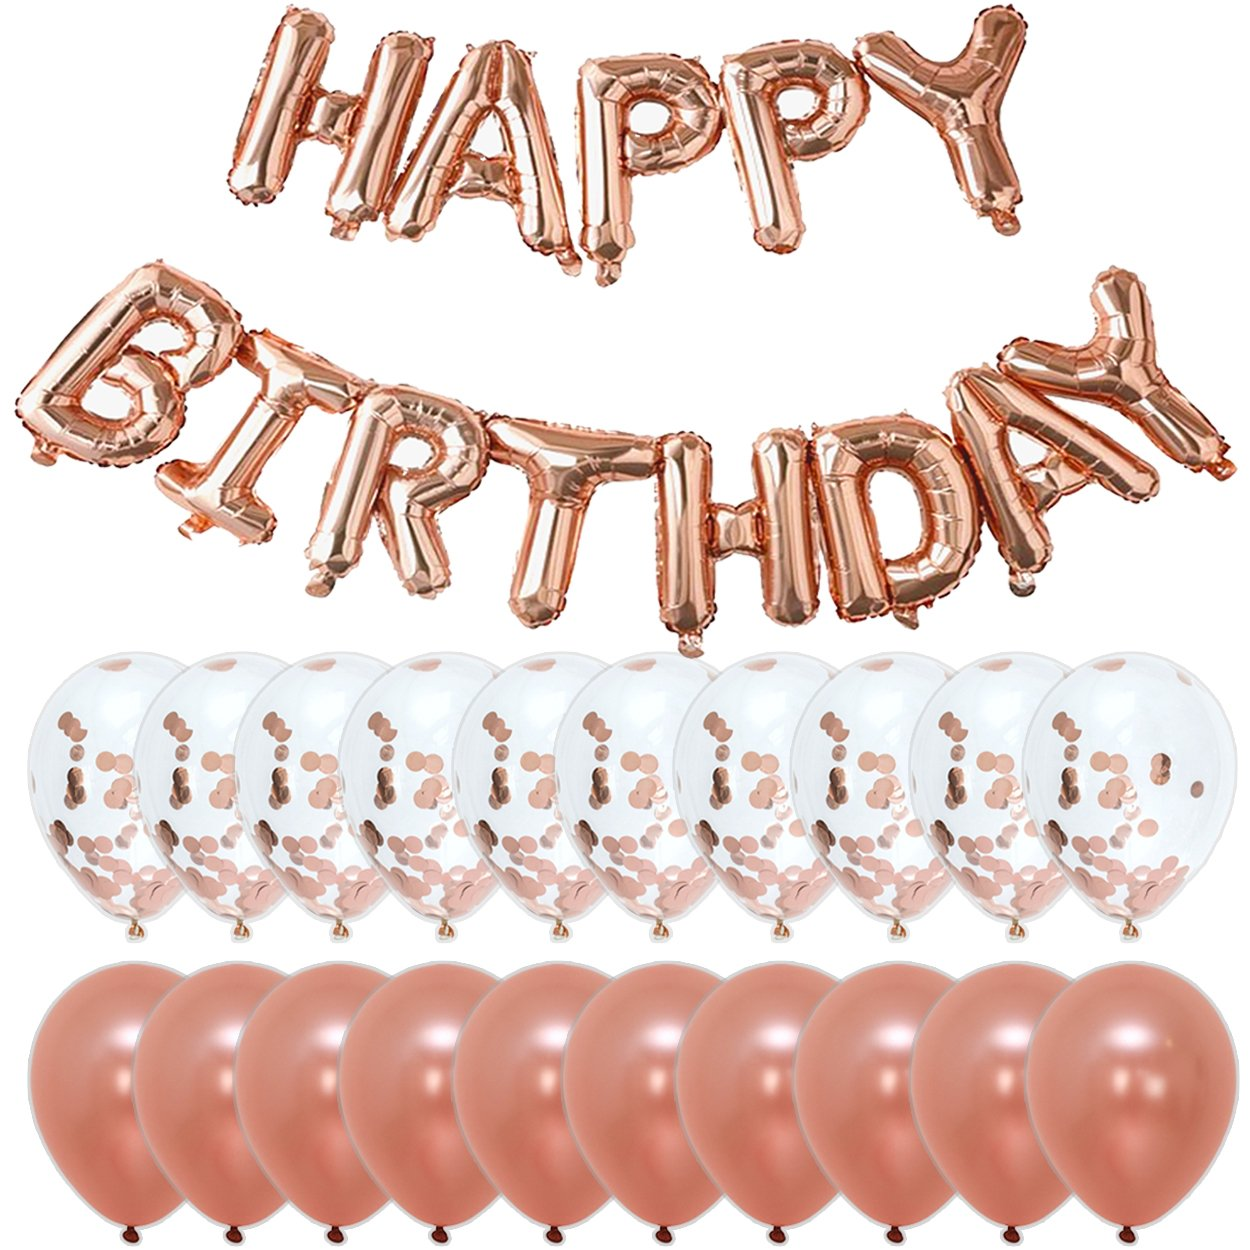 Rose Gold Happy Birthday Party Decorations   Banner Letter Balloons + 10pcs 18'' Confetti + 10pcs 18'' Large Latex Balloons   Kit/Set For Bday Décor